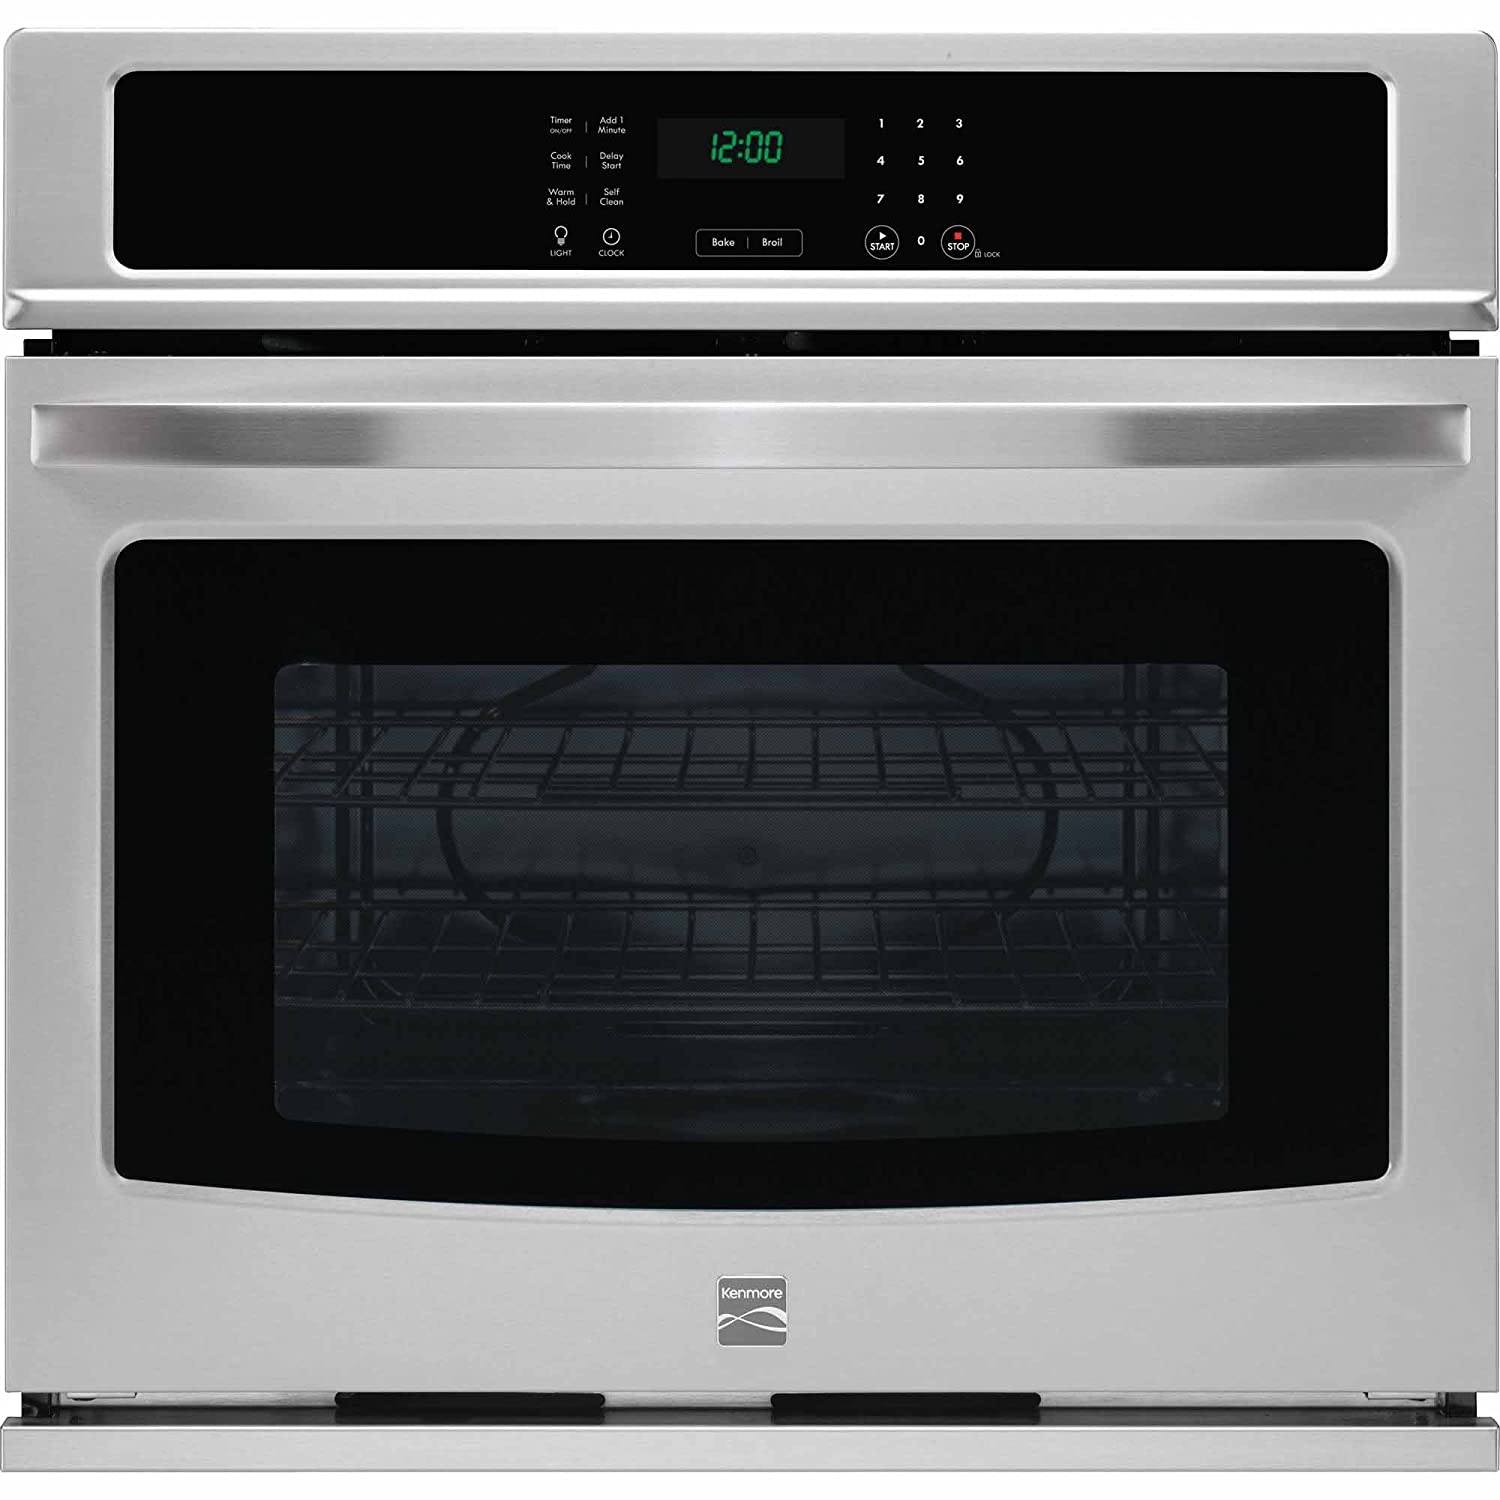 Kenmore 49423 30\' Electric Single Wall Oven with Select Clean in Stainless Steel, includes delivery and hookup (Available in select cities only) Sears Brands Management Corporation (Kenmore) 02249423